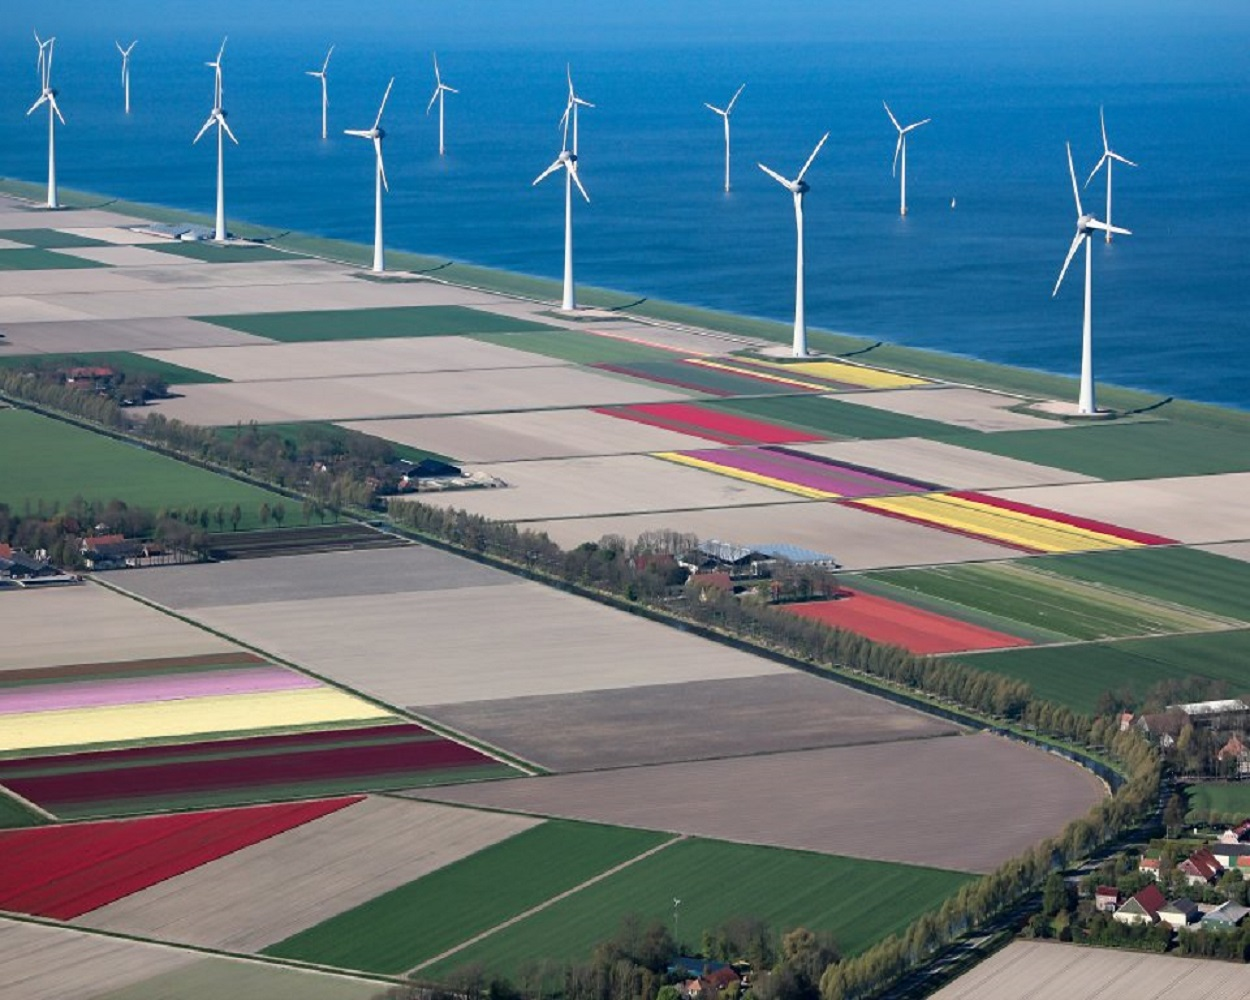 Tulip farming in Flevoland